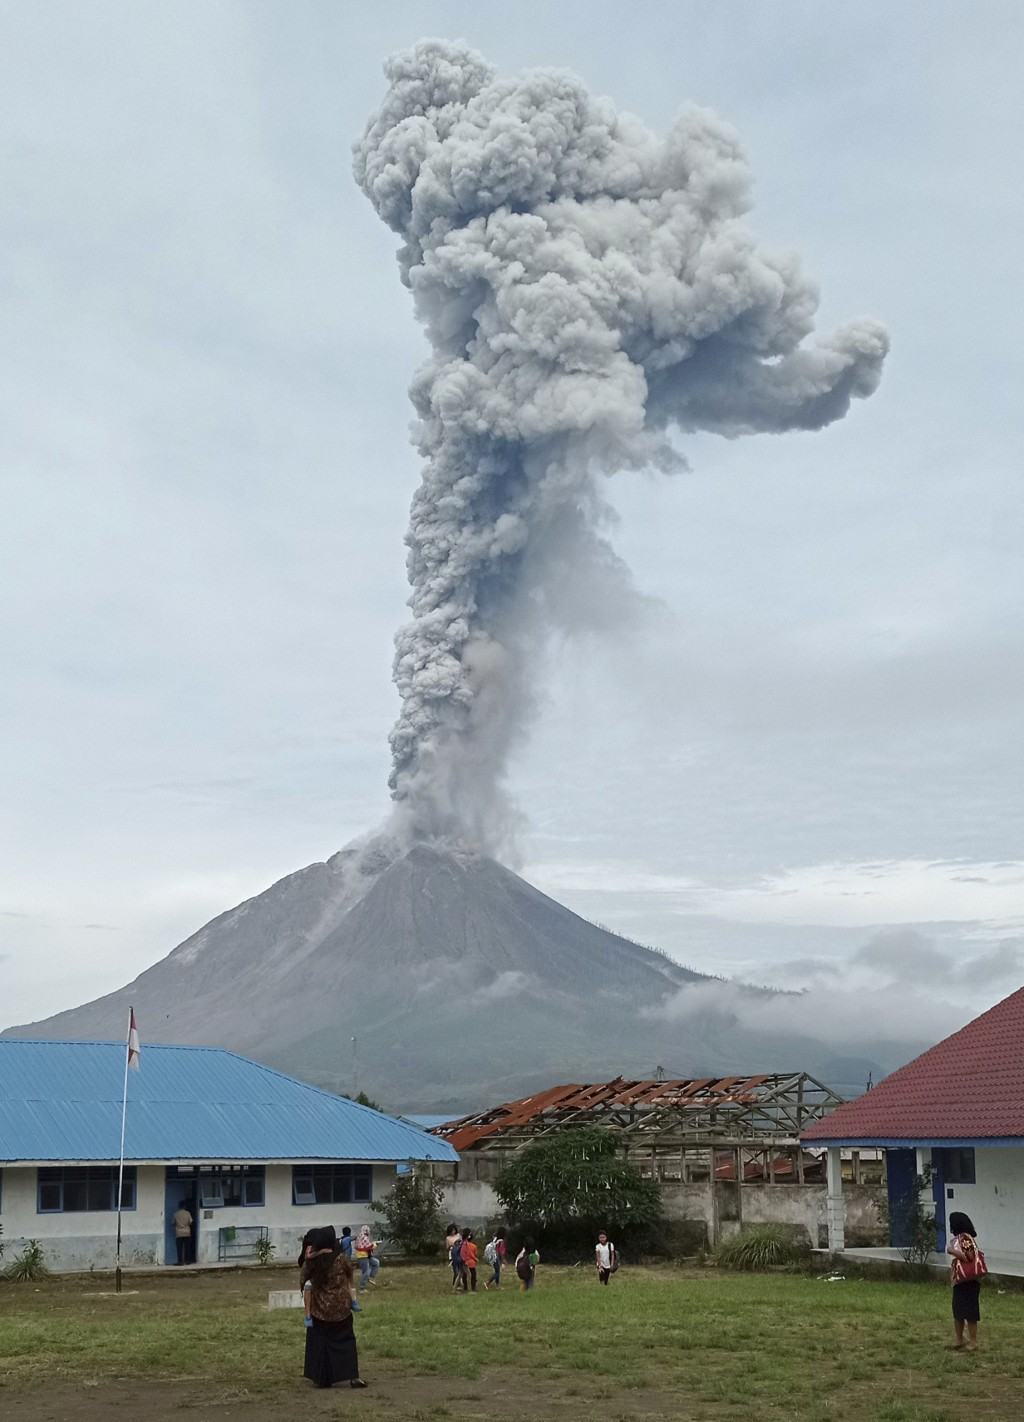 Mount Sinabung releases volcanic materials during an eruption as seen from a school yard in Karo, North Sumatra, Indonesia, Friday, May 7, 2021. Sinab...